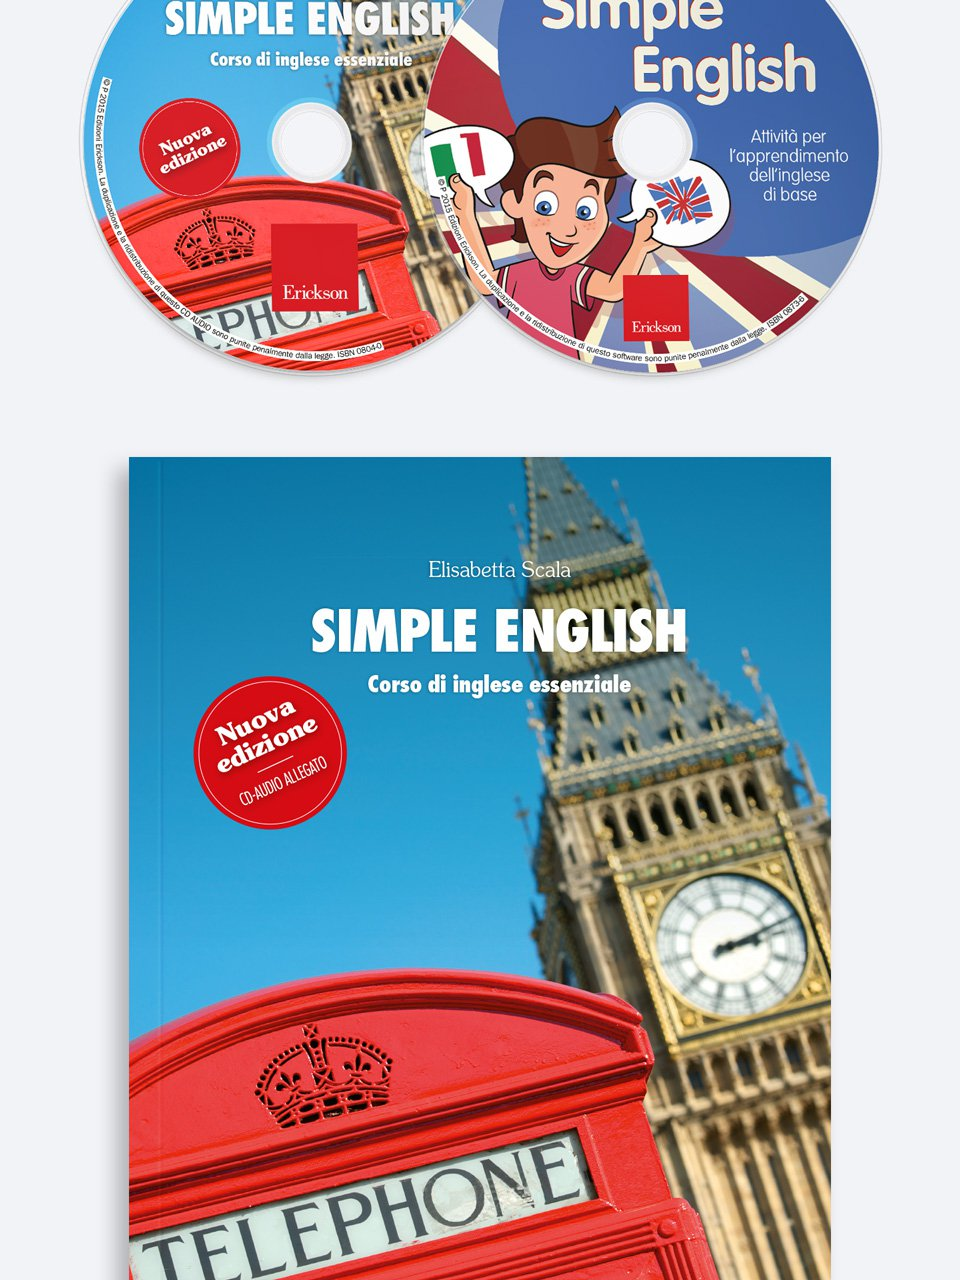 Simple English - Français facile - Libri - App e software - Erickson 3